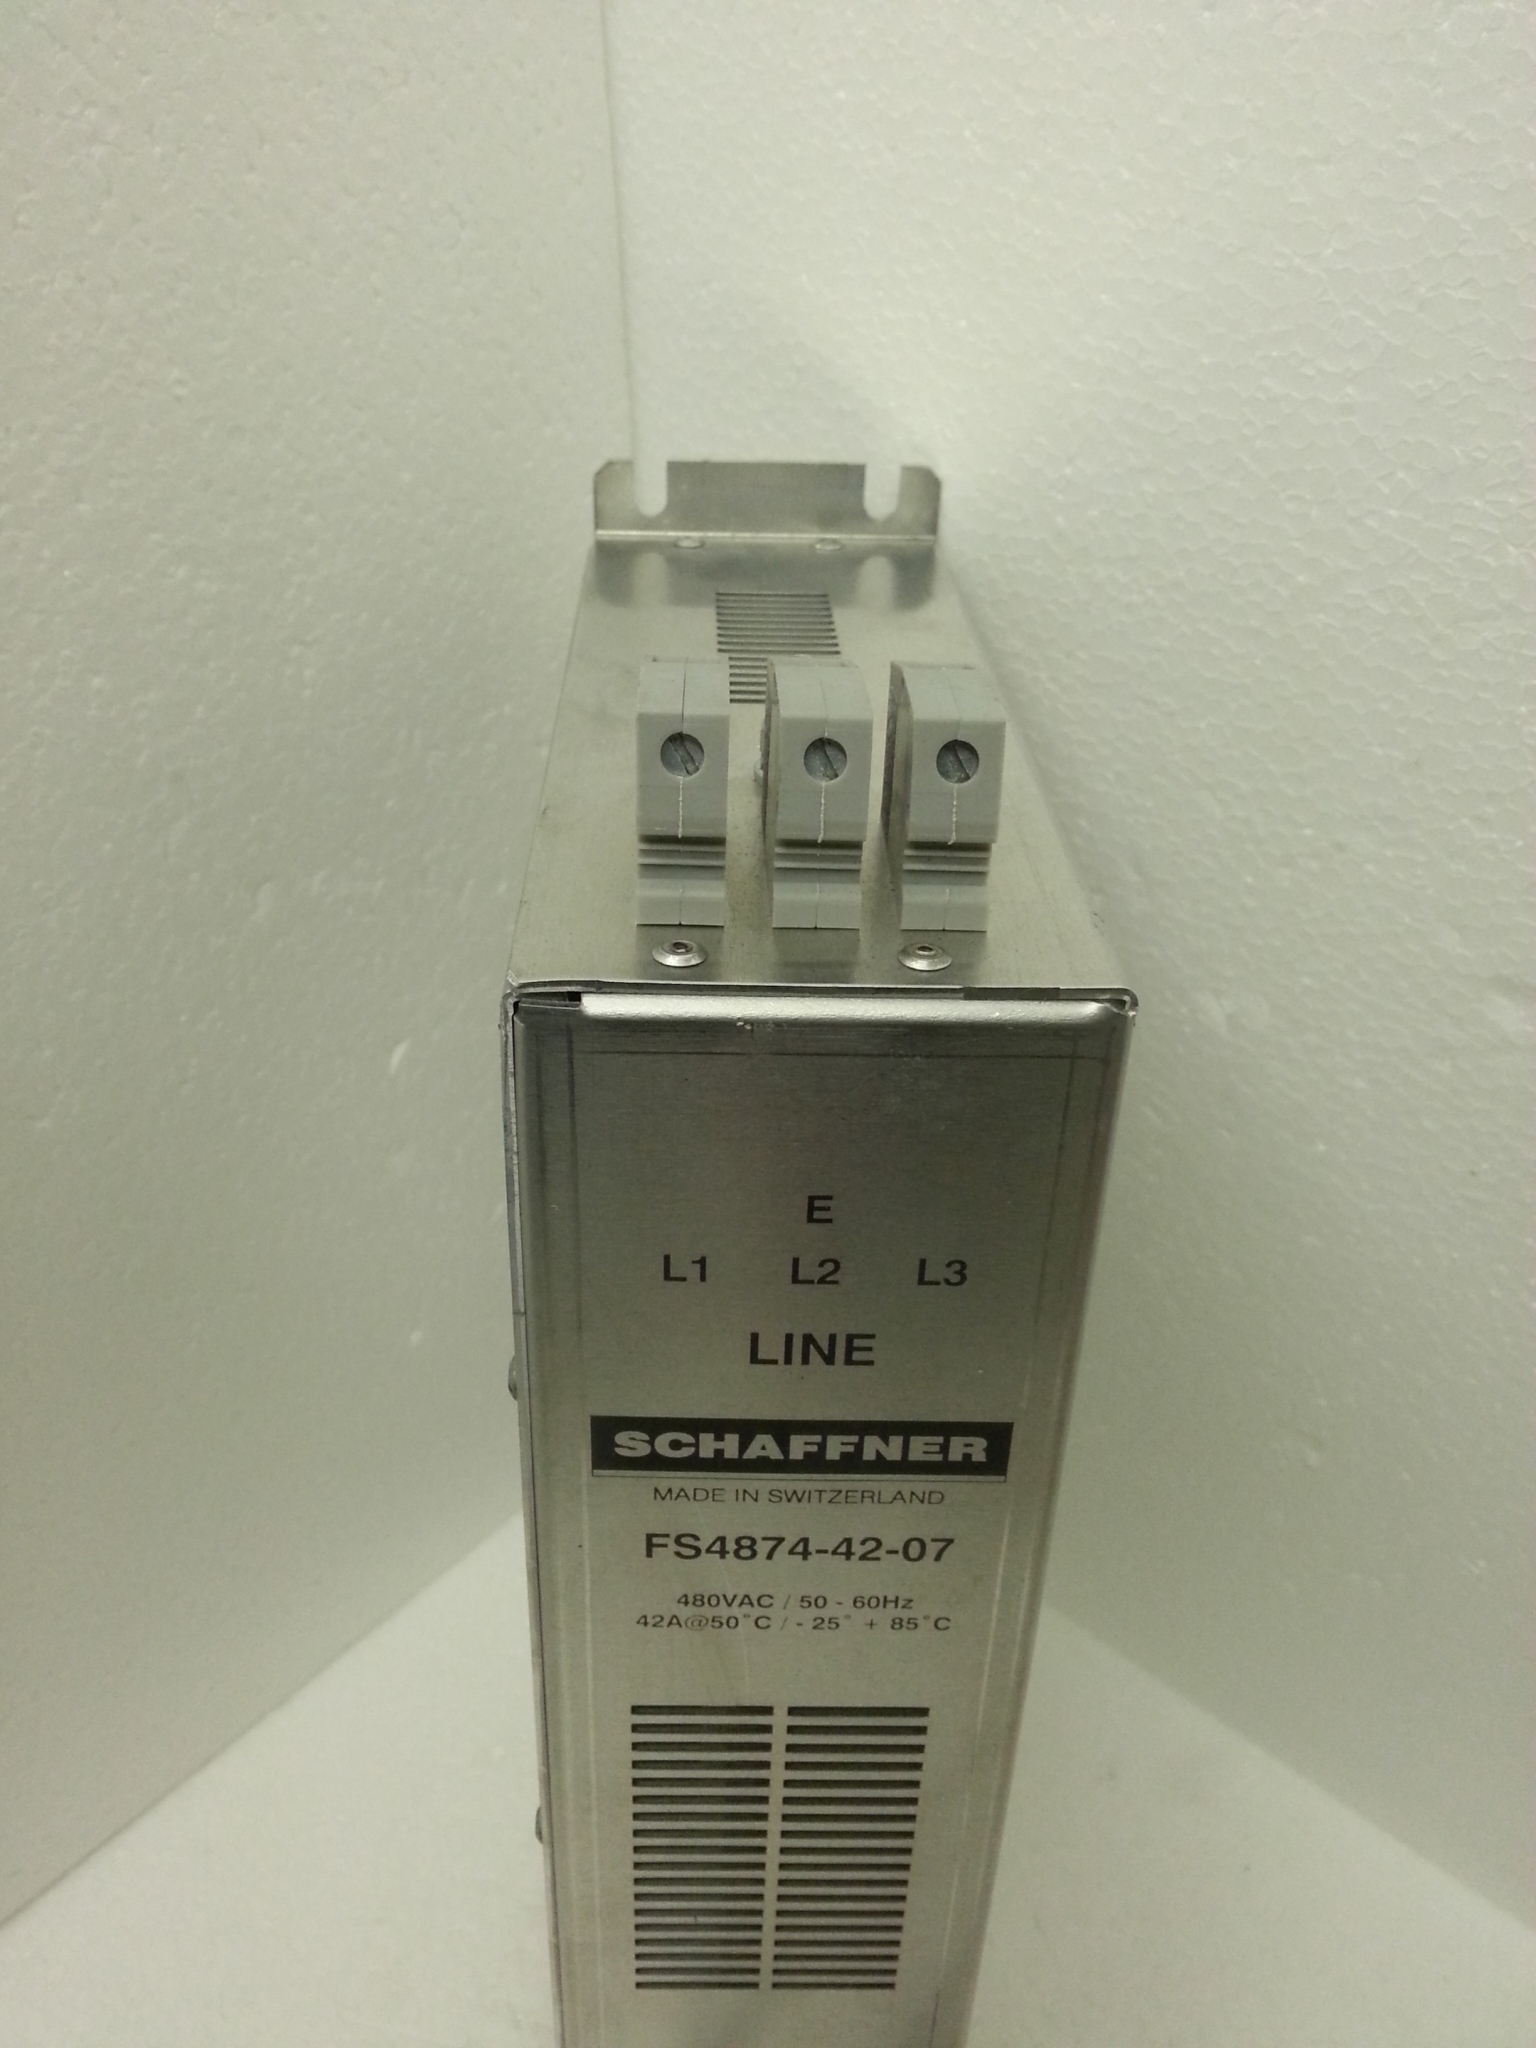 FS4874-42-07 Schaffner EMI EMC frequency drive filter